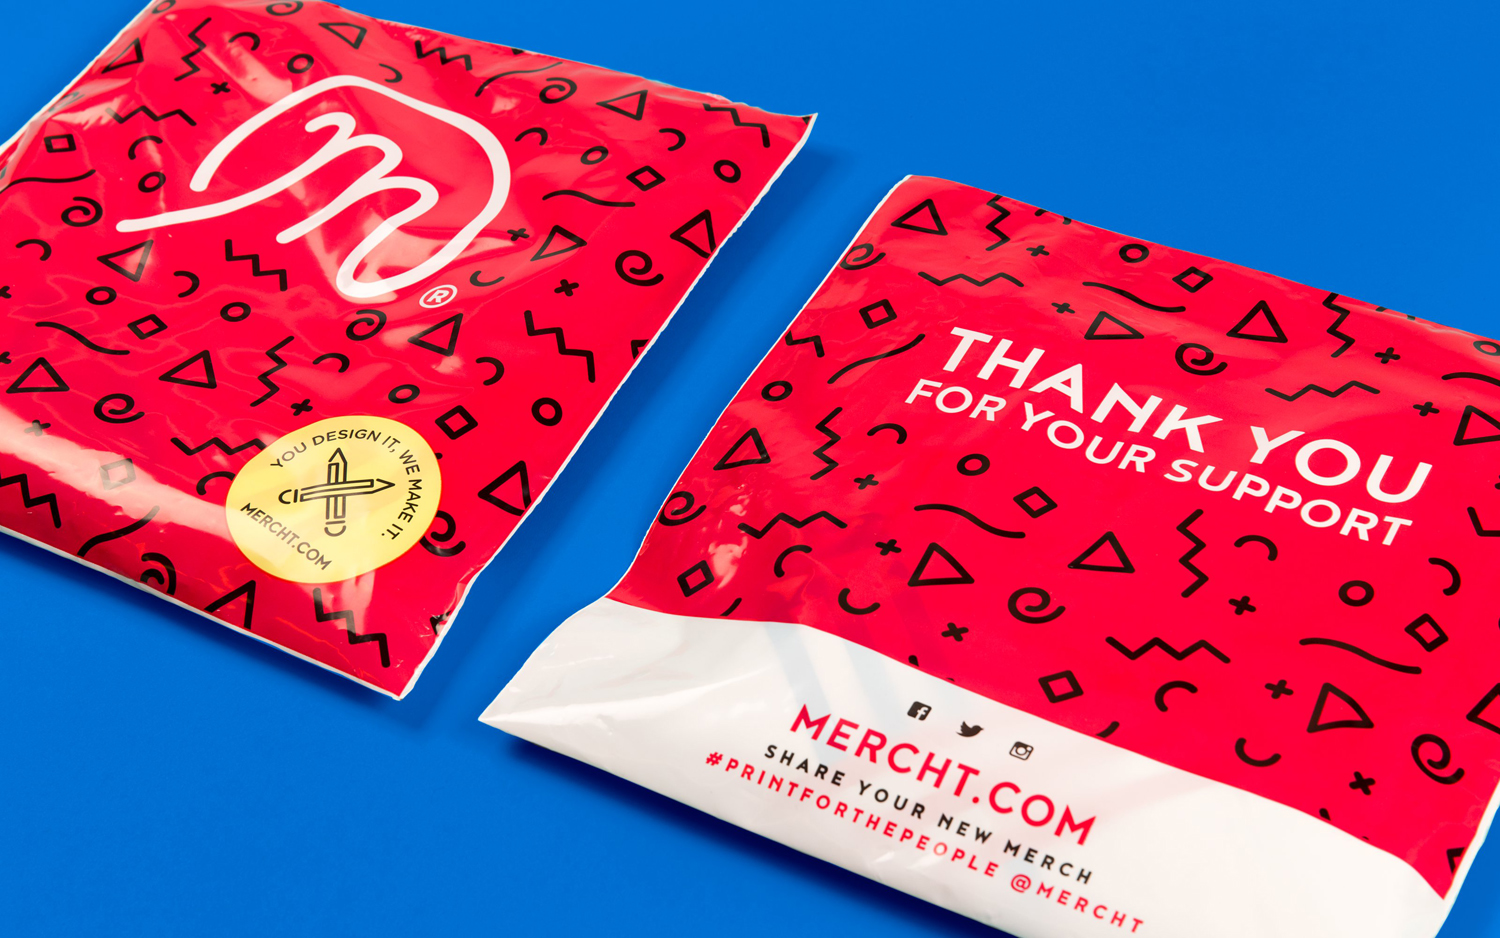 Brand identity and packaging for UK based custom merchandise business Mercht by Robot Food